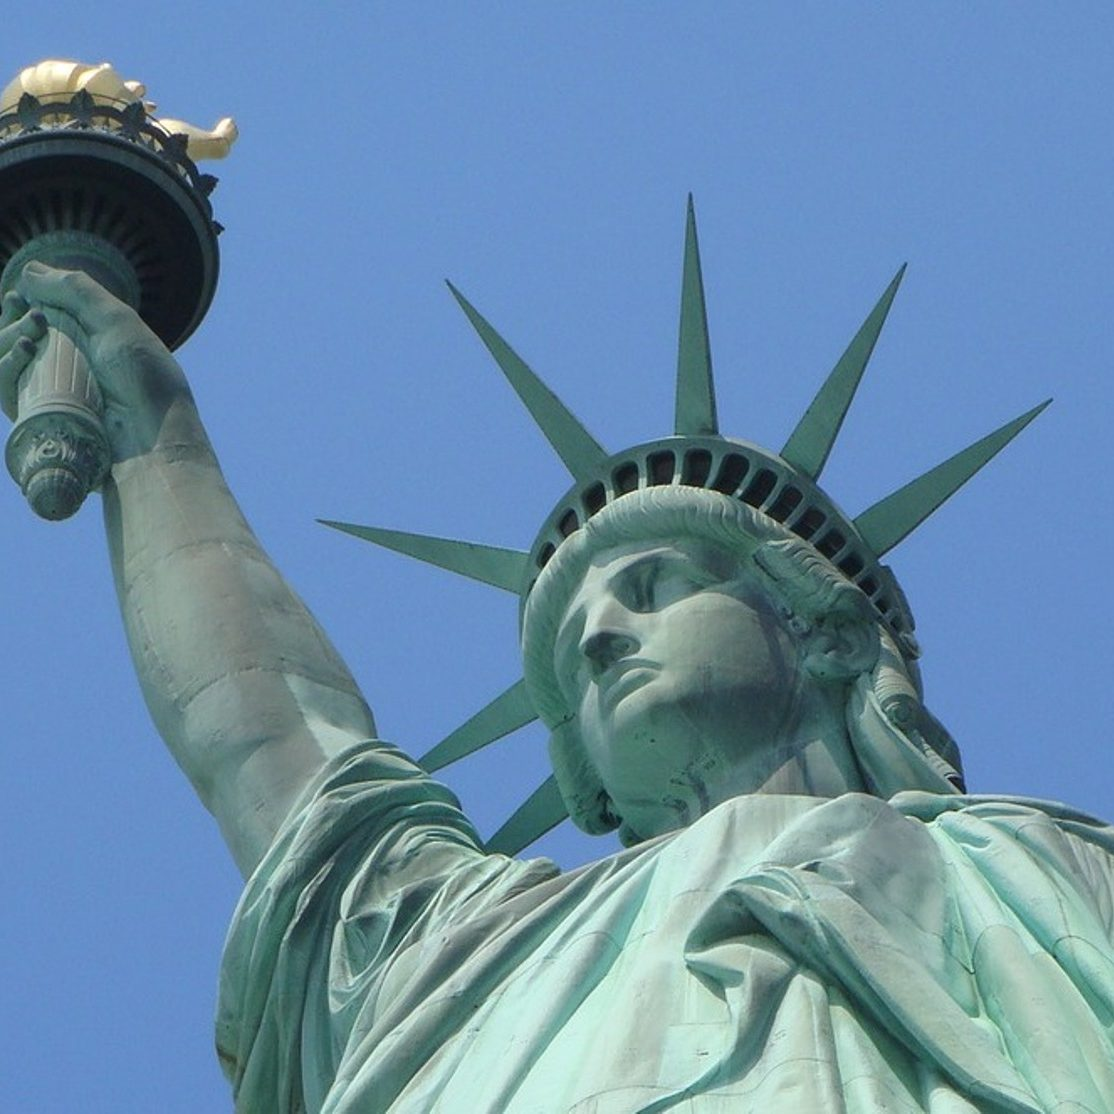 statue-of-liberty-1834573_1280